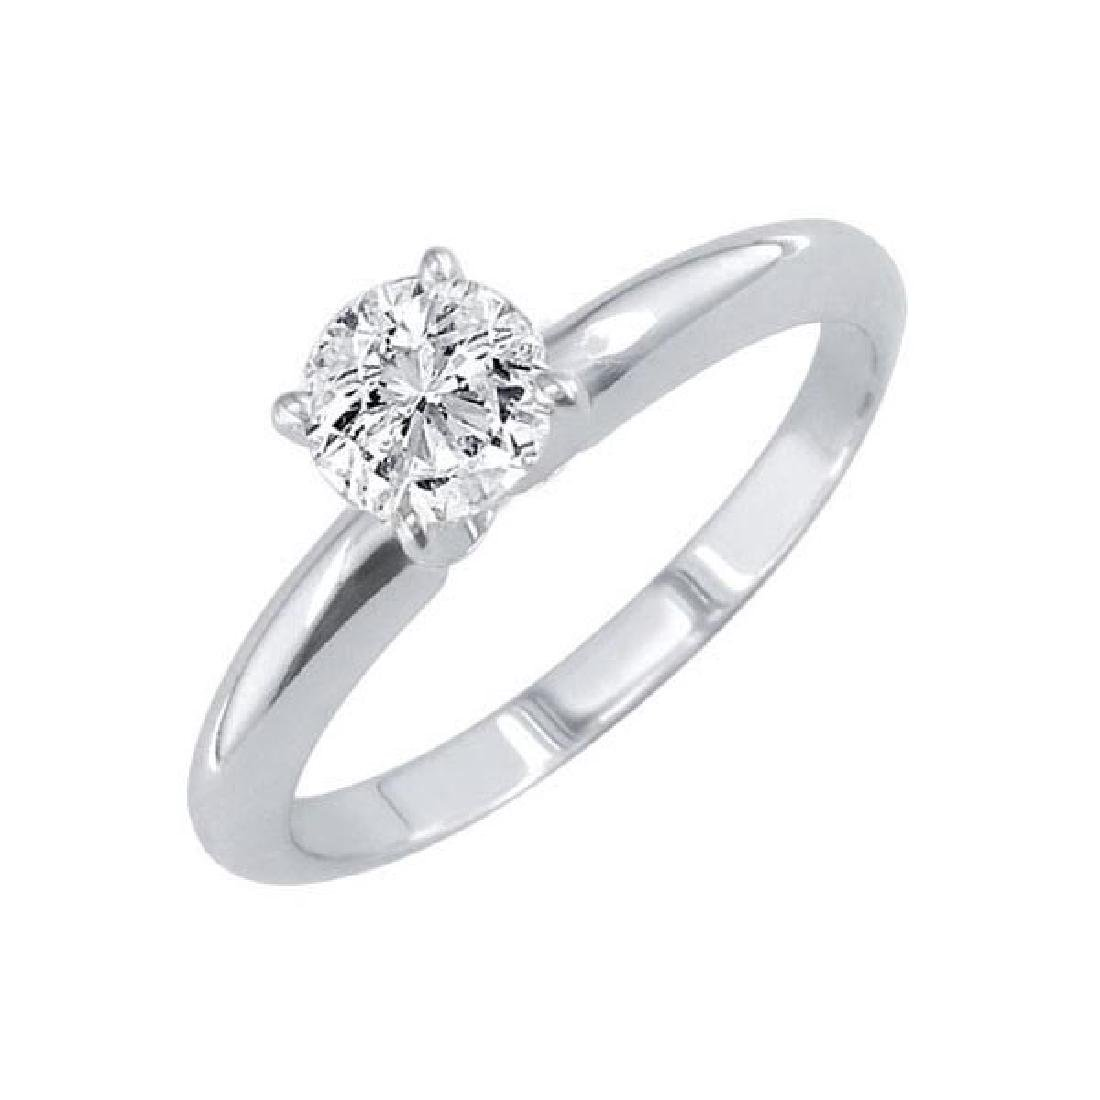 Certified 0.64 CTW Round Diamond Solitaire 14k Ring F/S